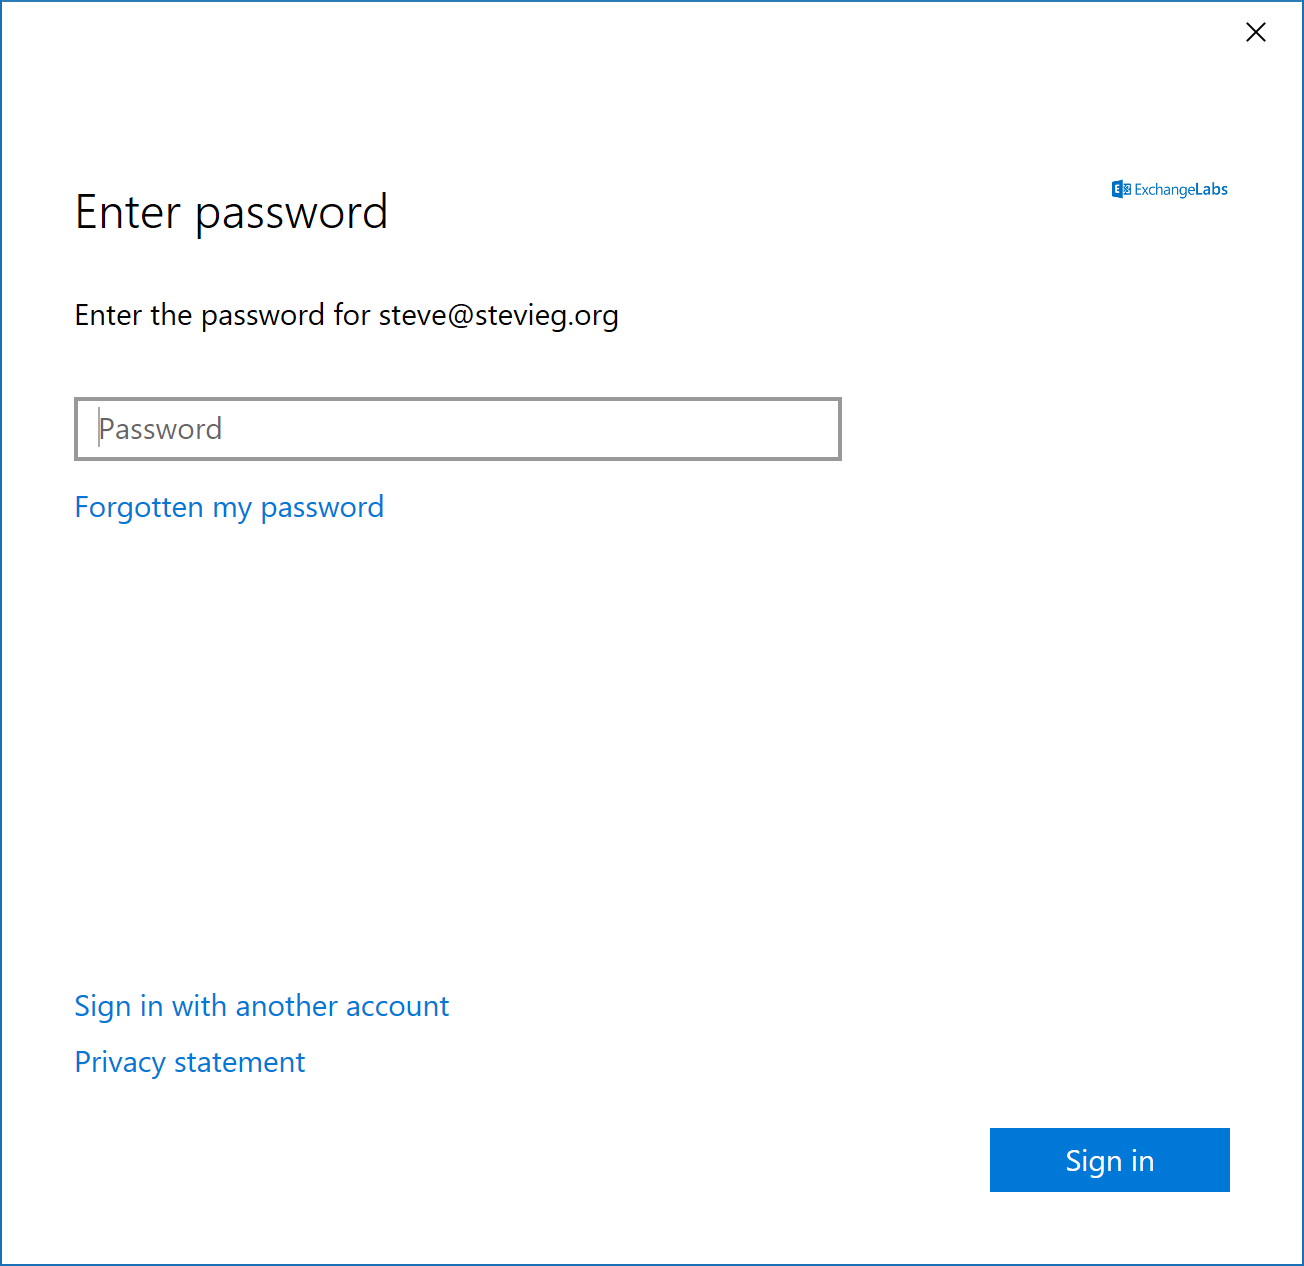 Basic Authentication prompt with older version of Outlook